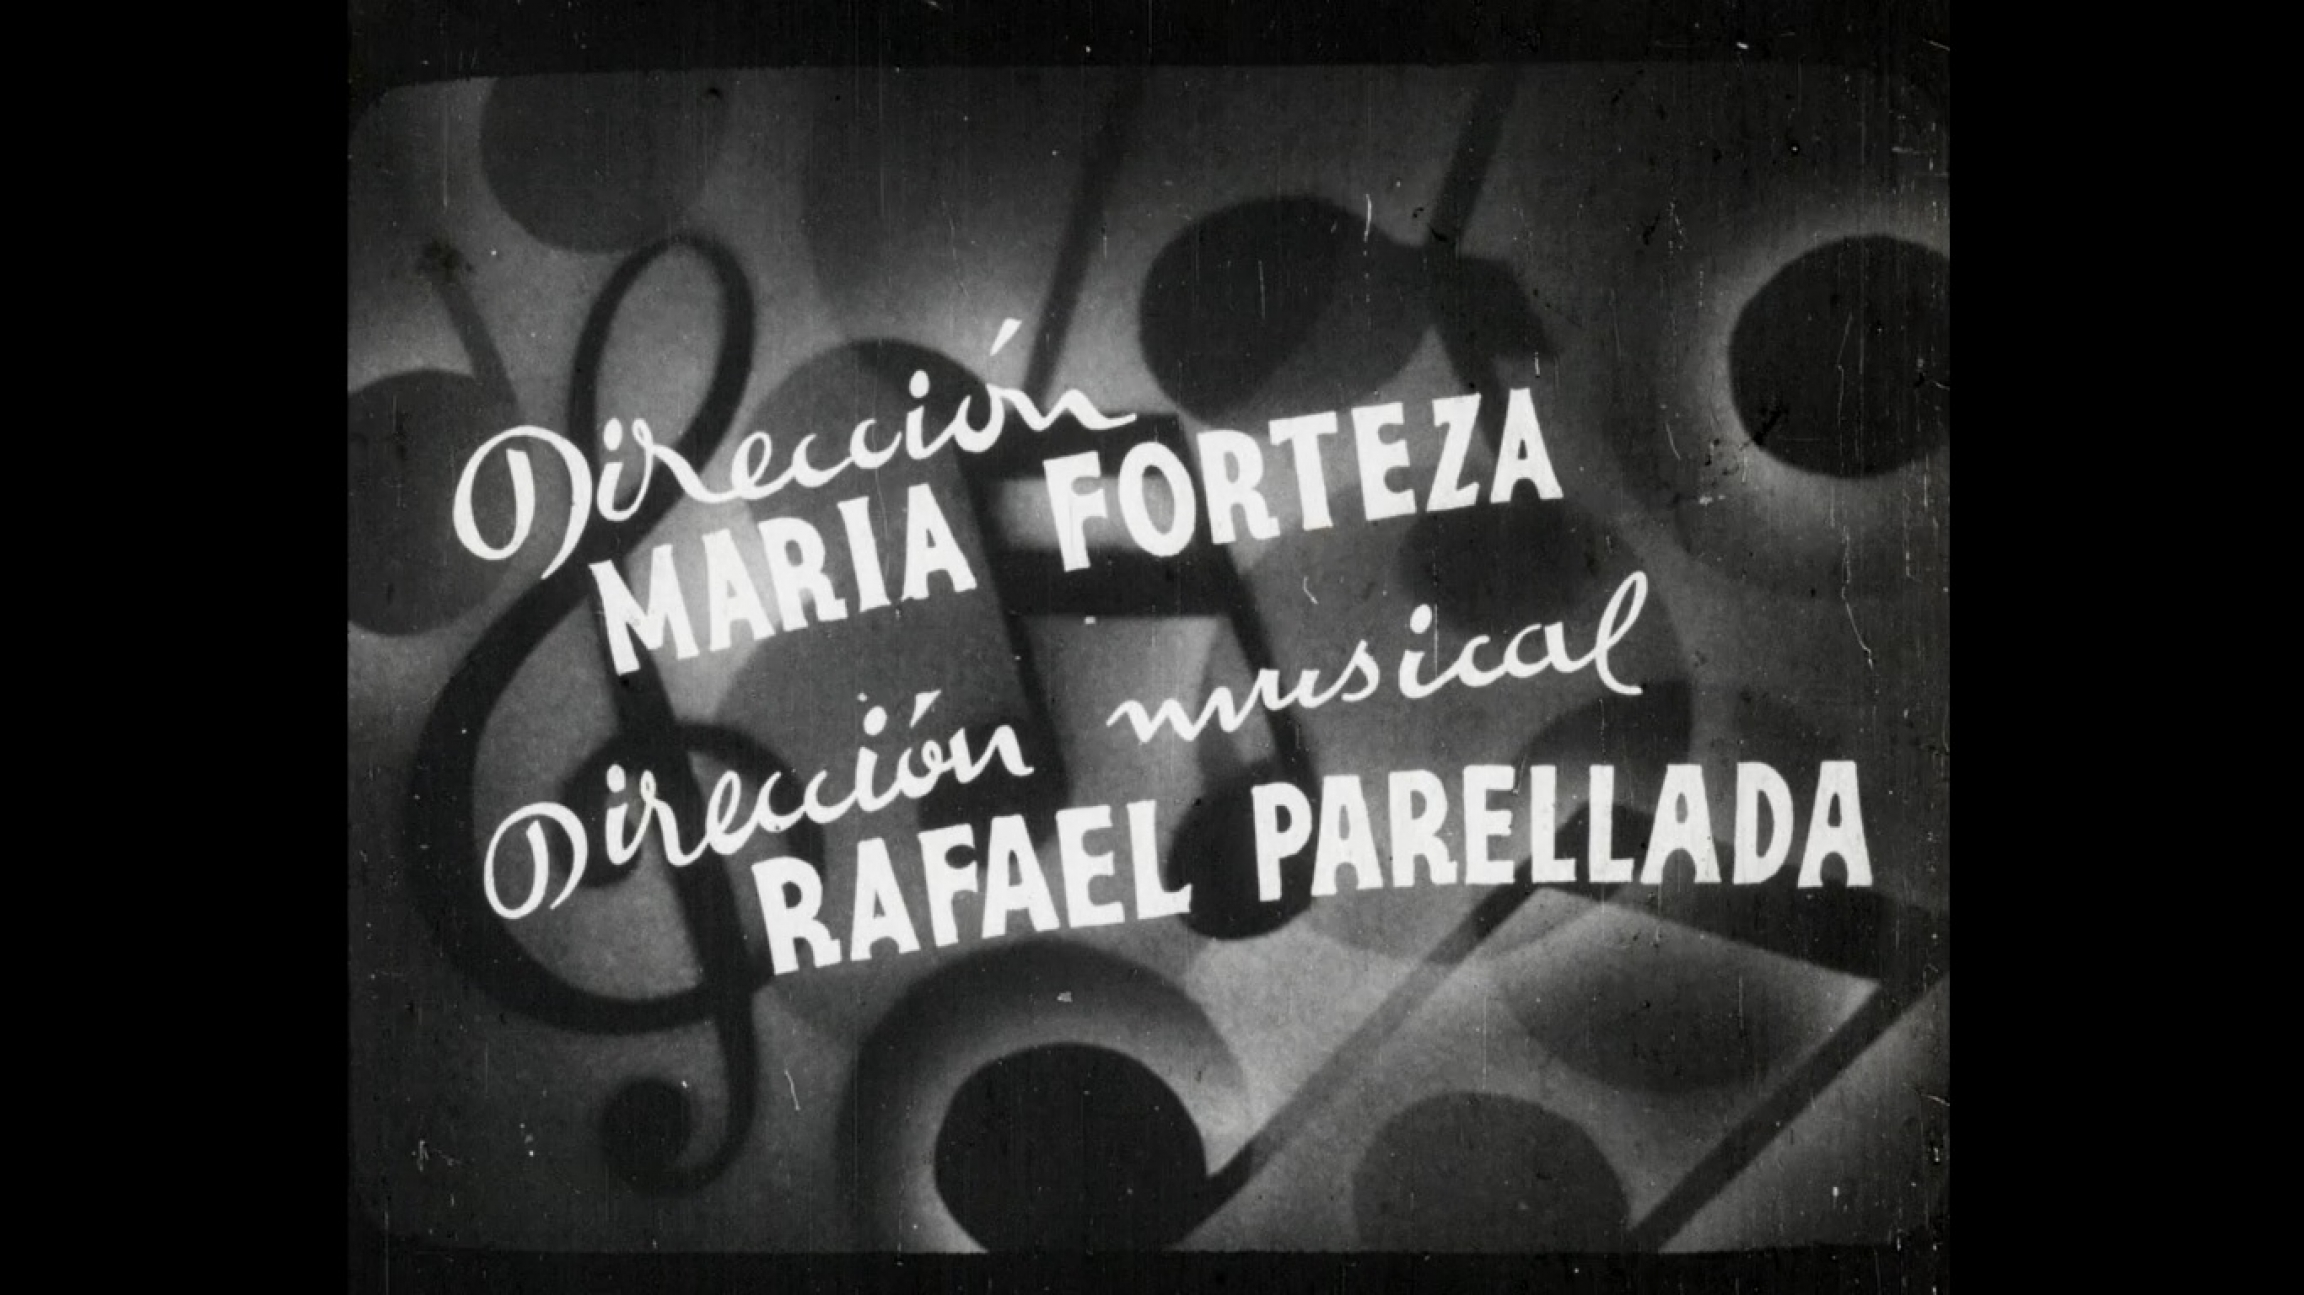 A screenshot of an old black and white film credit